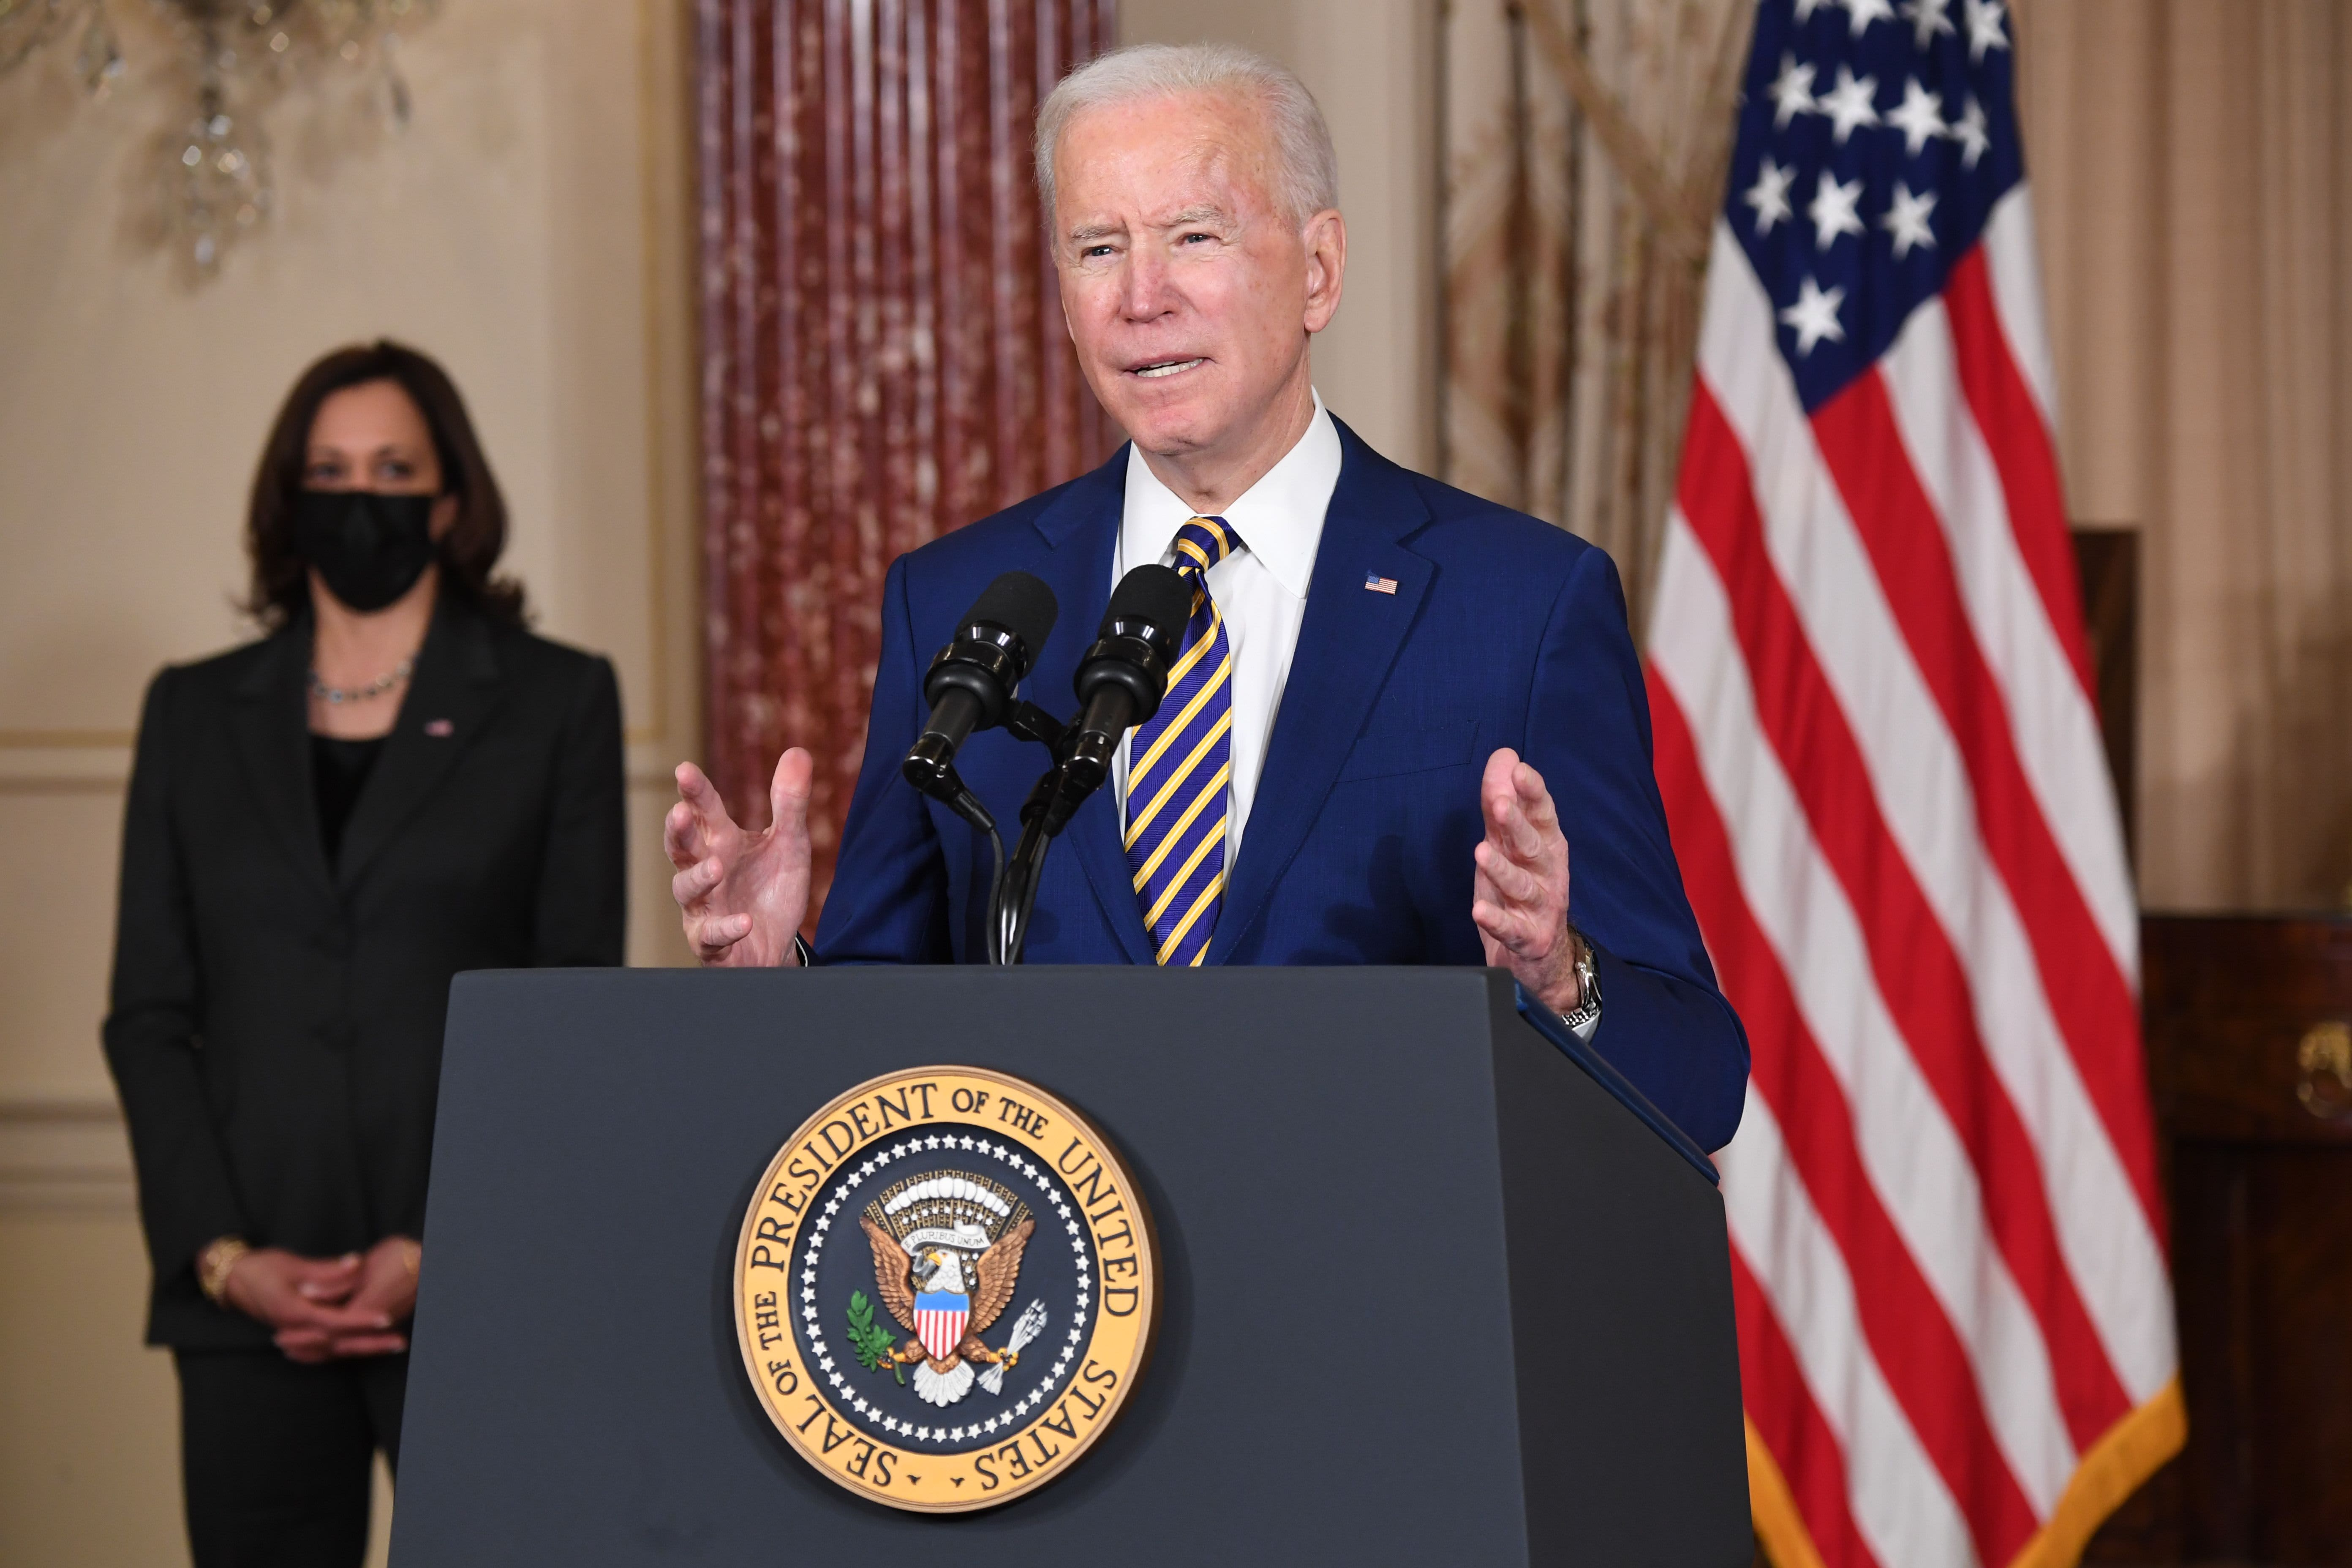 Biden says U.S. will not hesitate to raise the cost on Russia, calls for Navalny's immediate release - CNBC